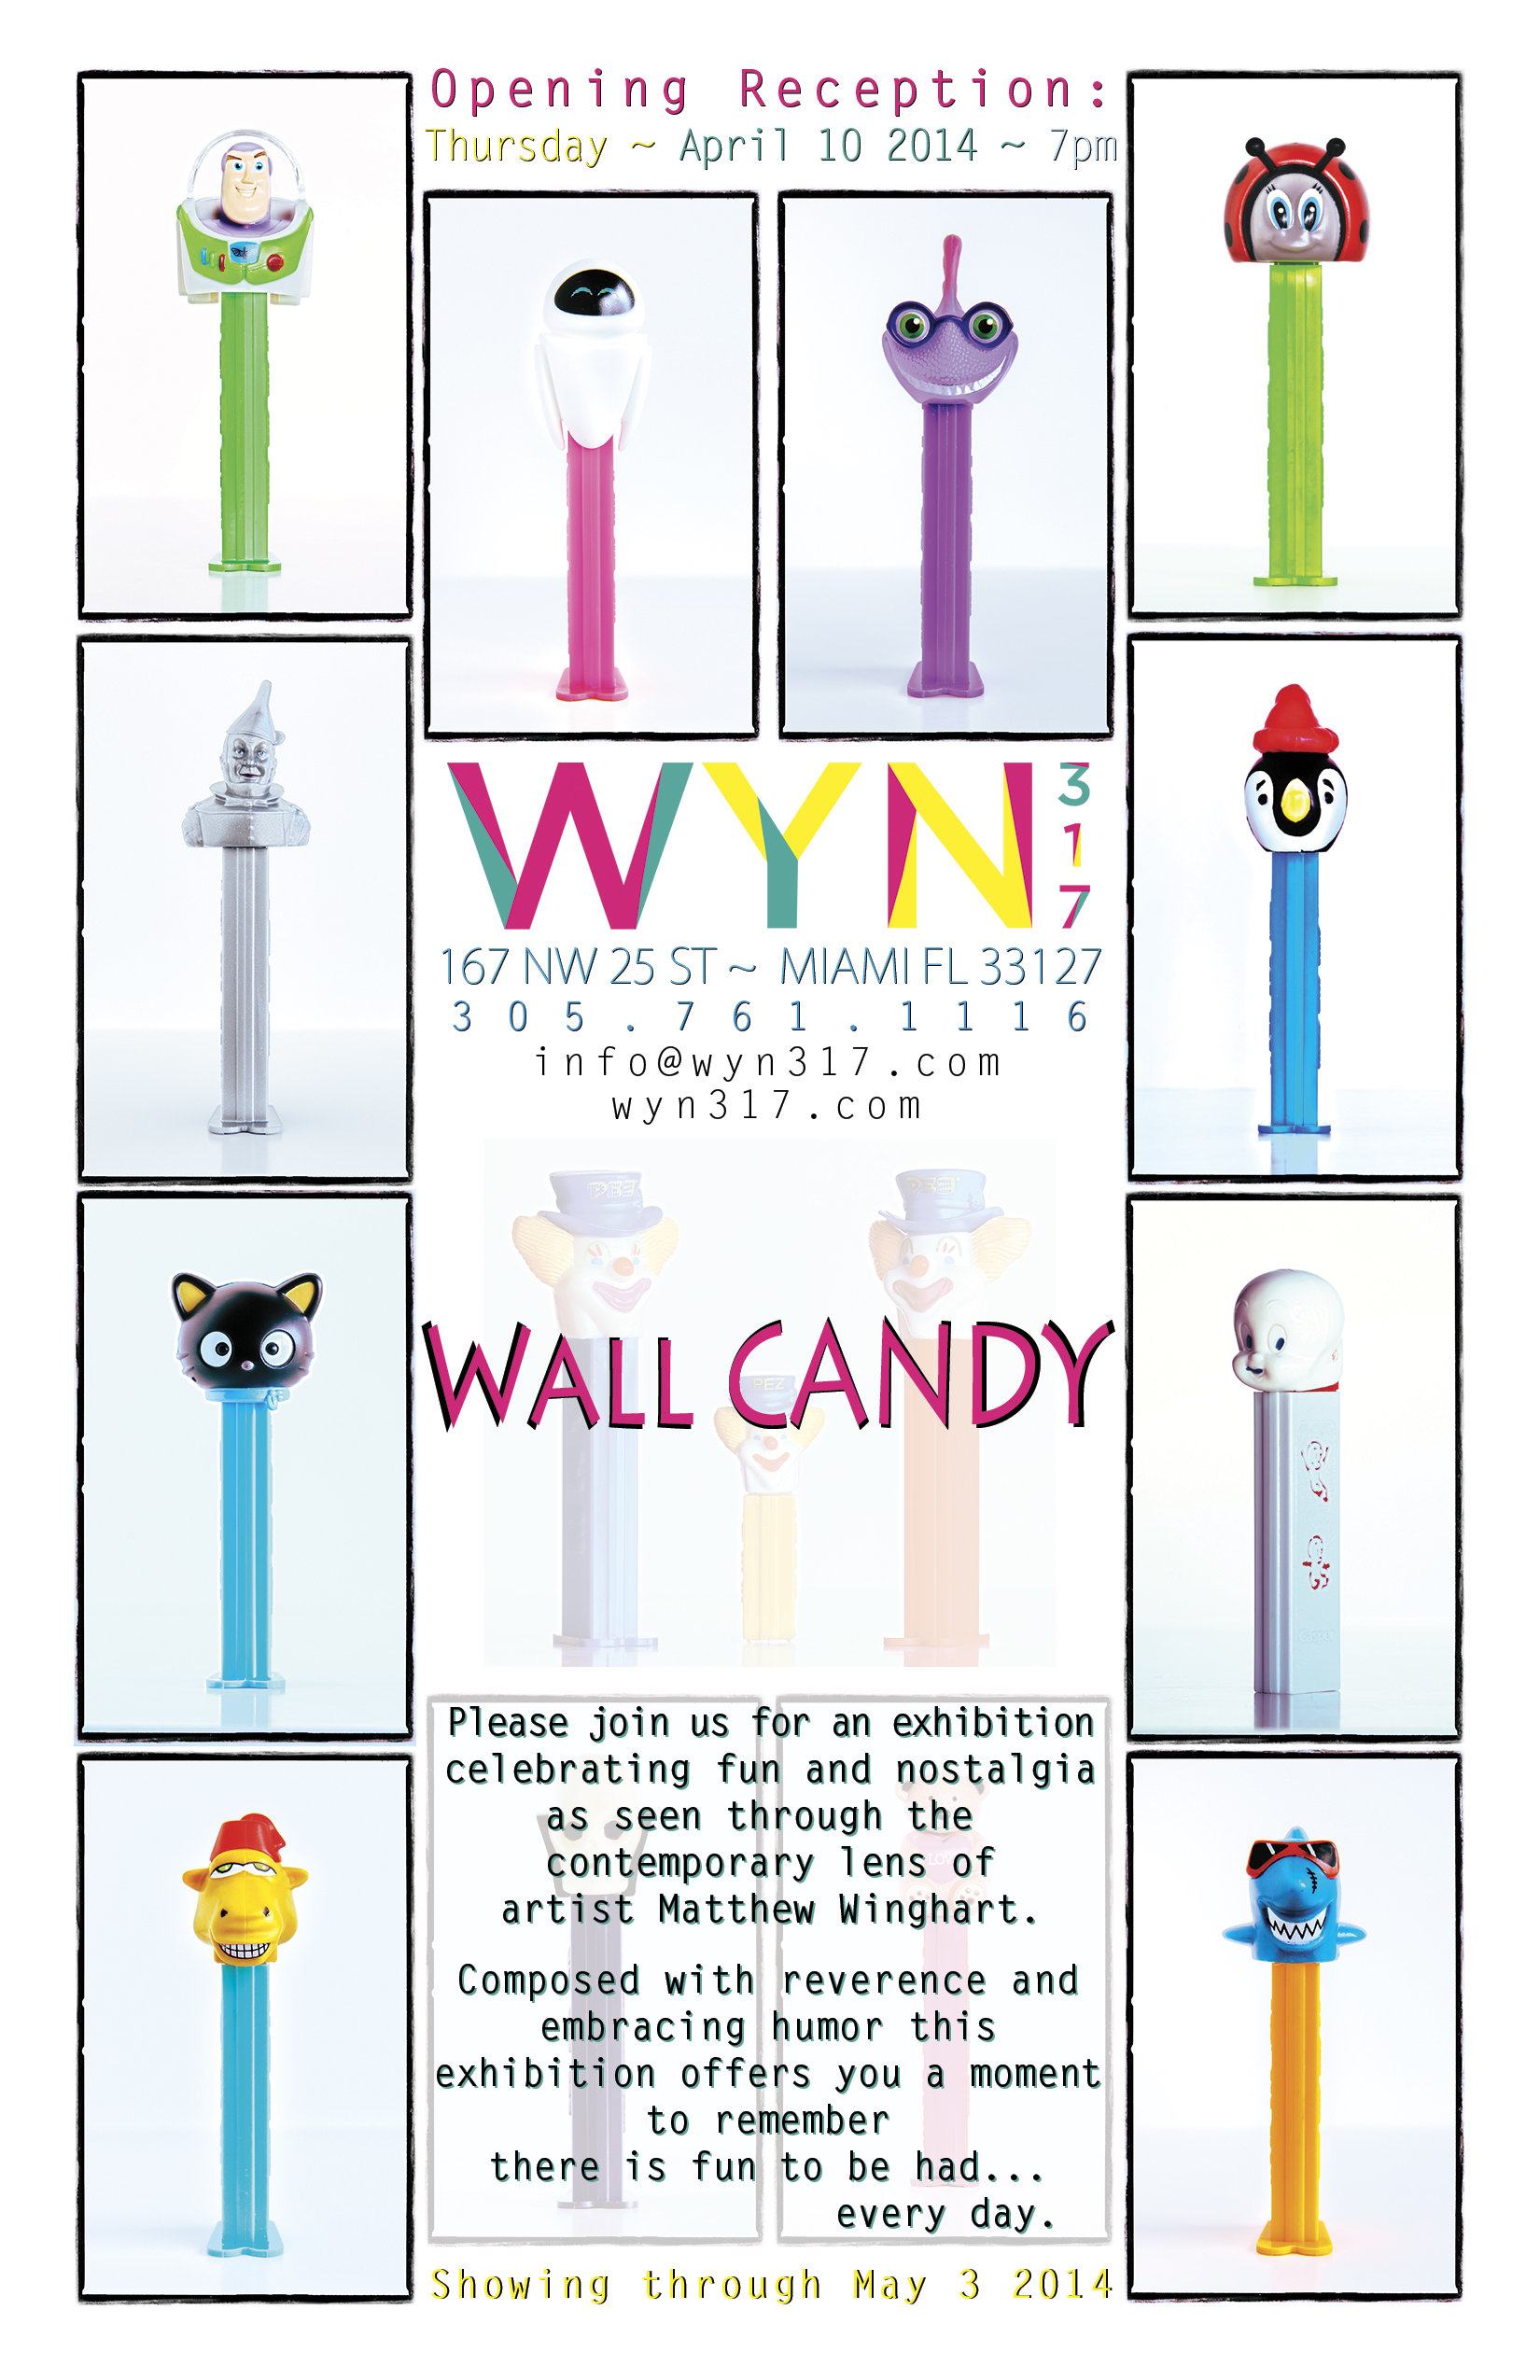 Wall-Candy-@ Wyn317 v2.jpg